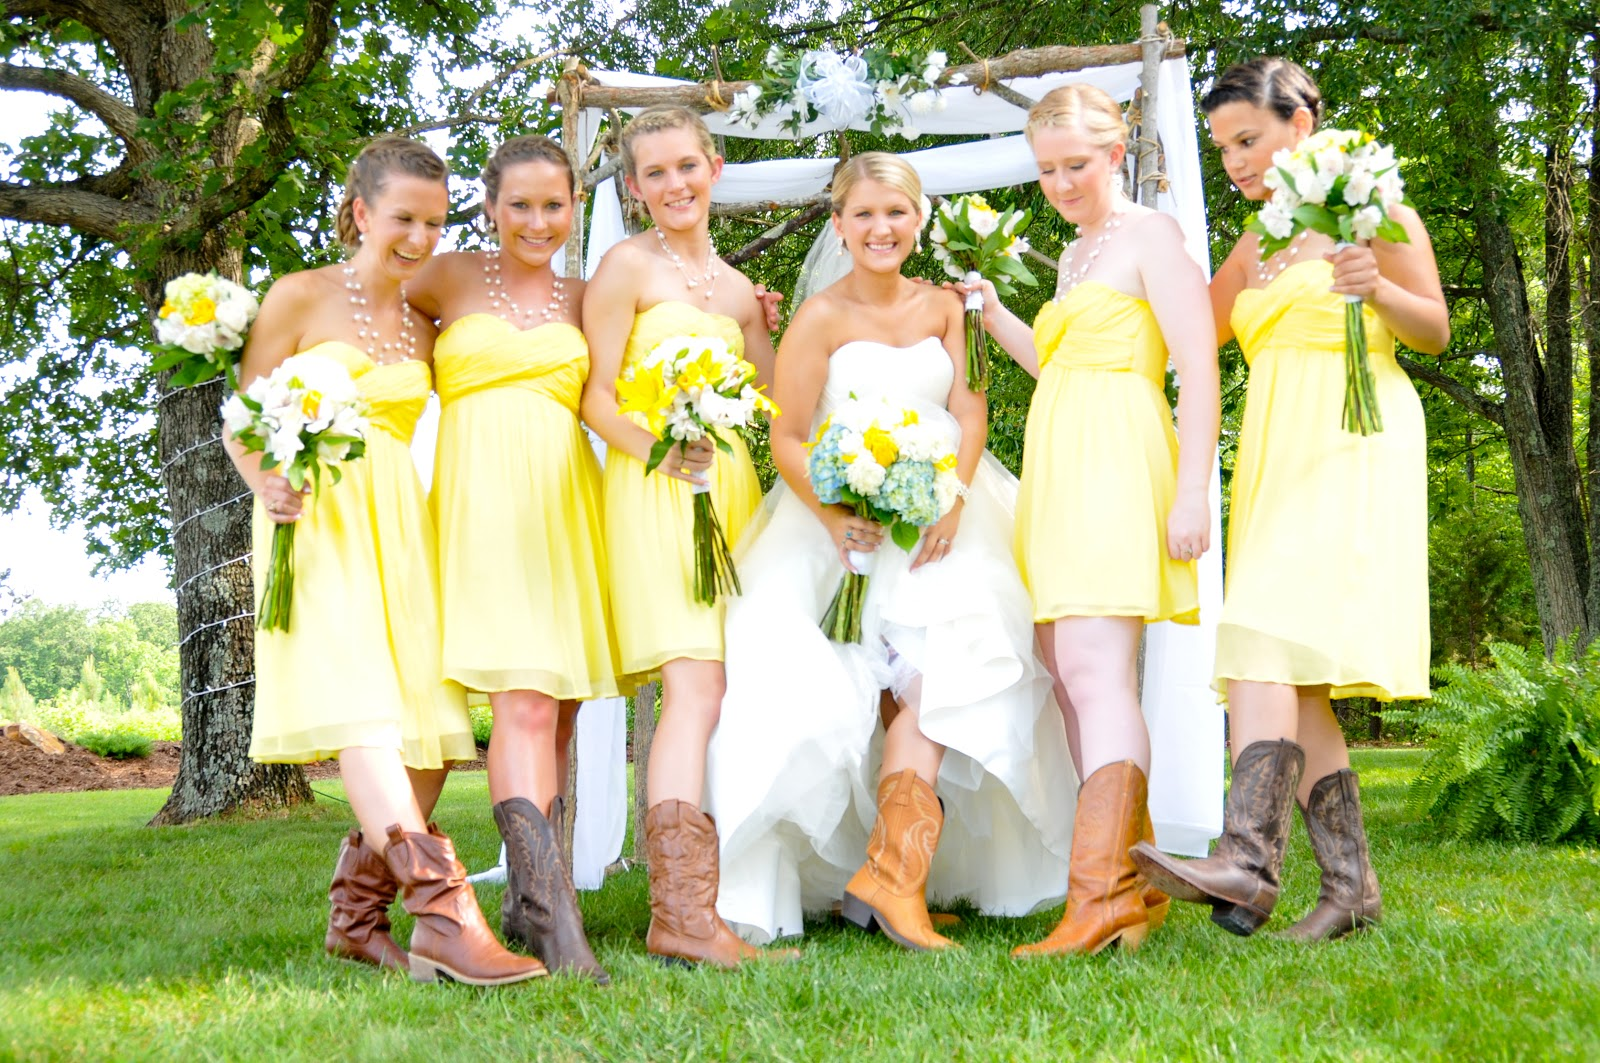 Yellow country style bridesmaid dresses dress ideas yellow country style bridesmaid dresses ombrellifo Choice Image